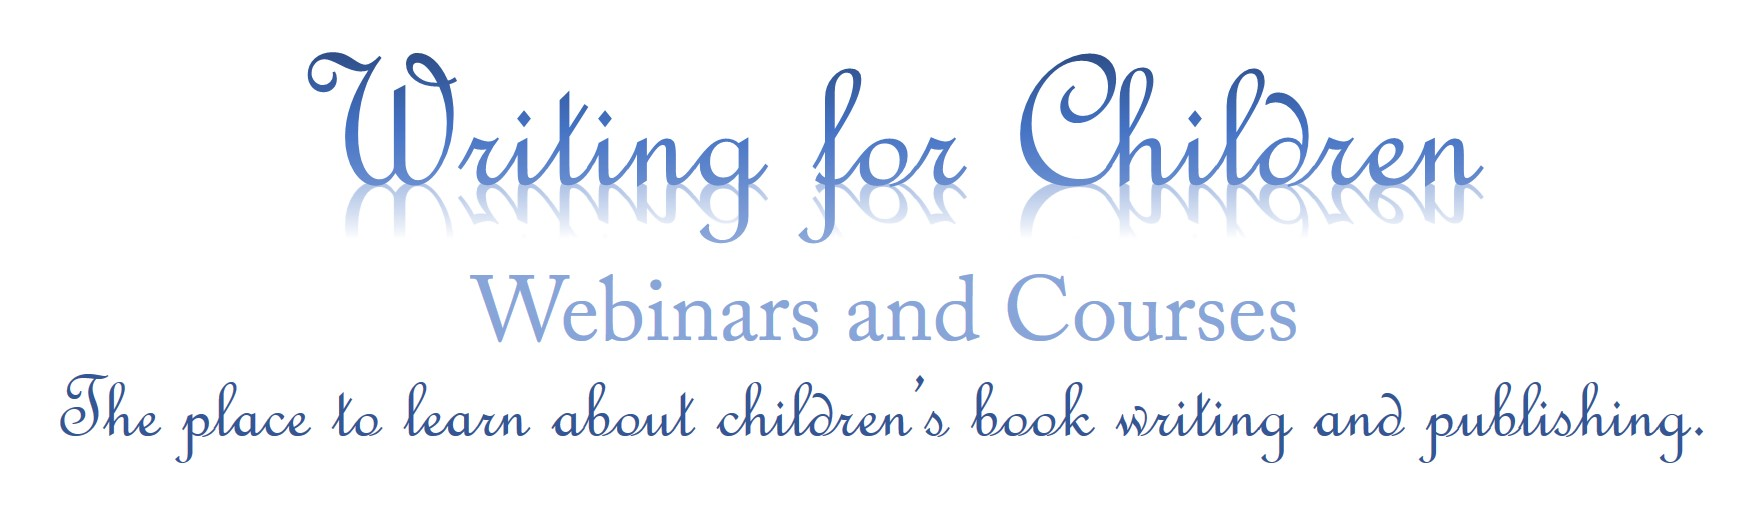 writing for children webinars and courses